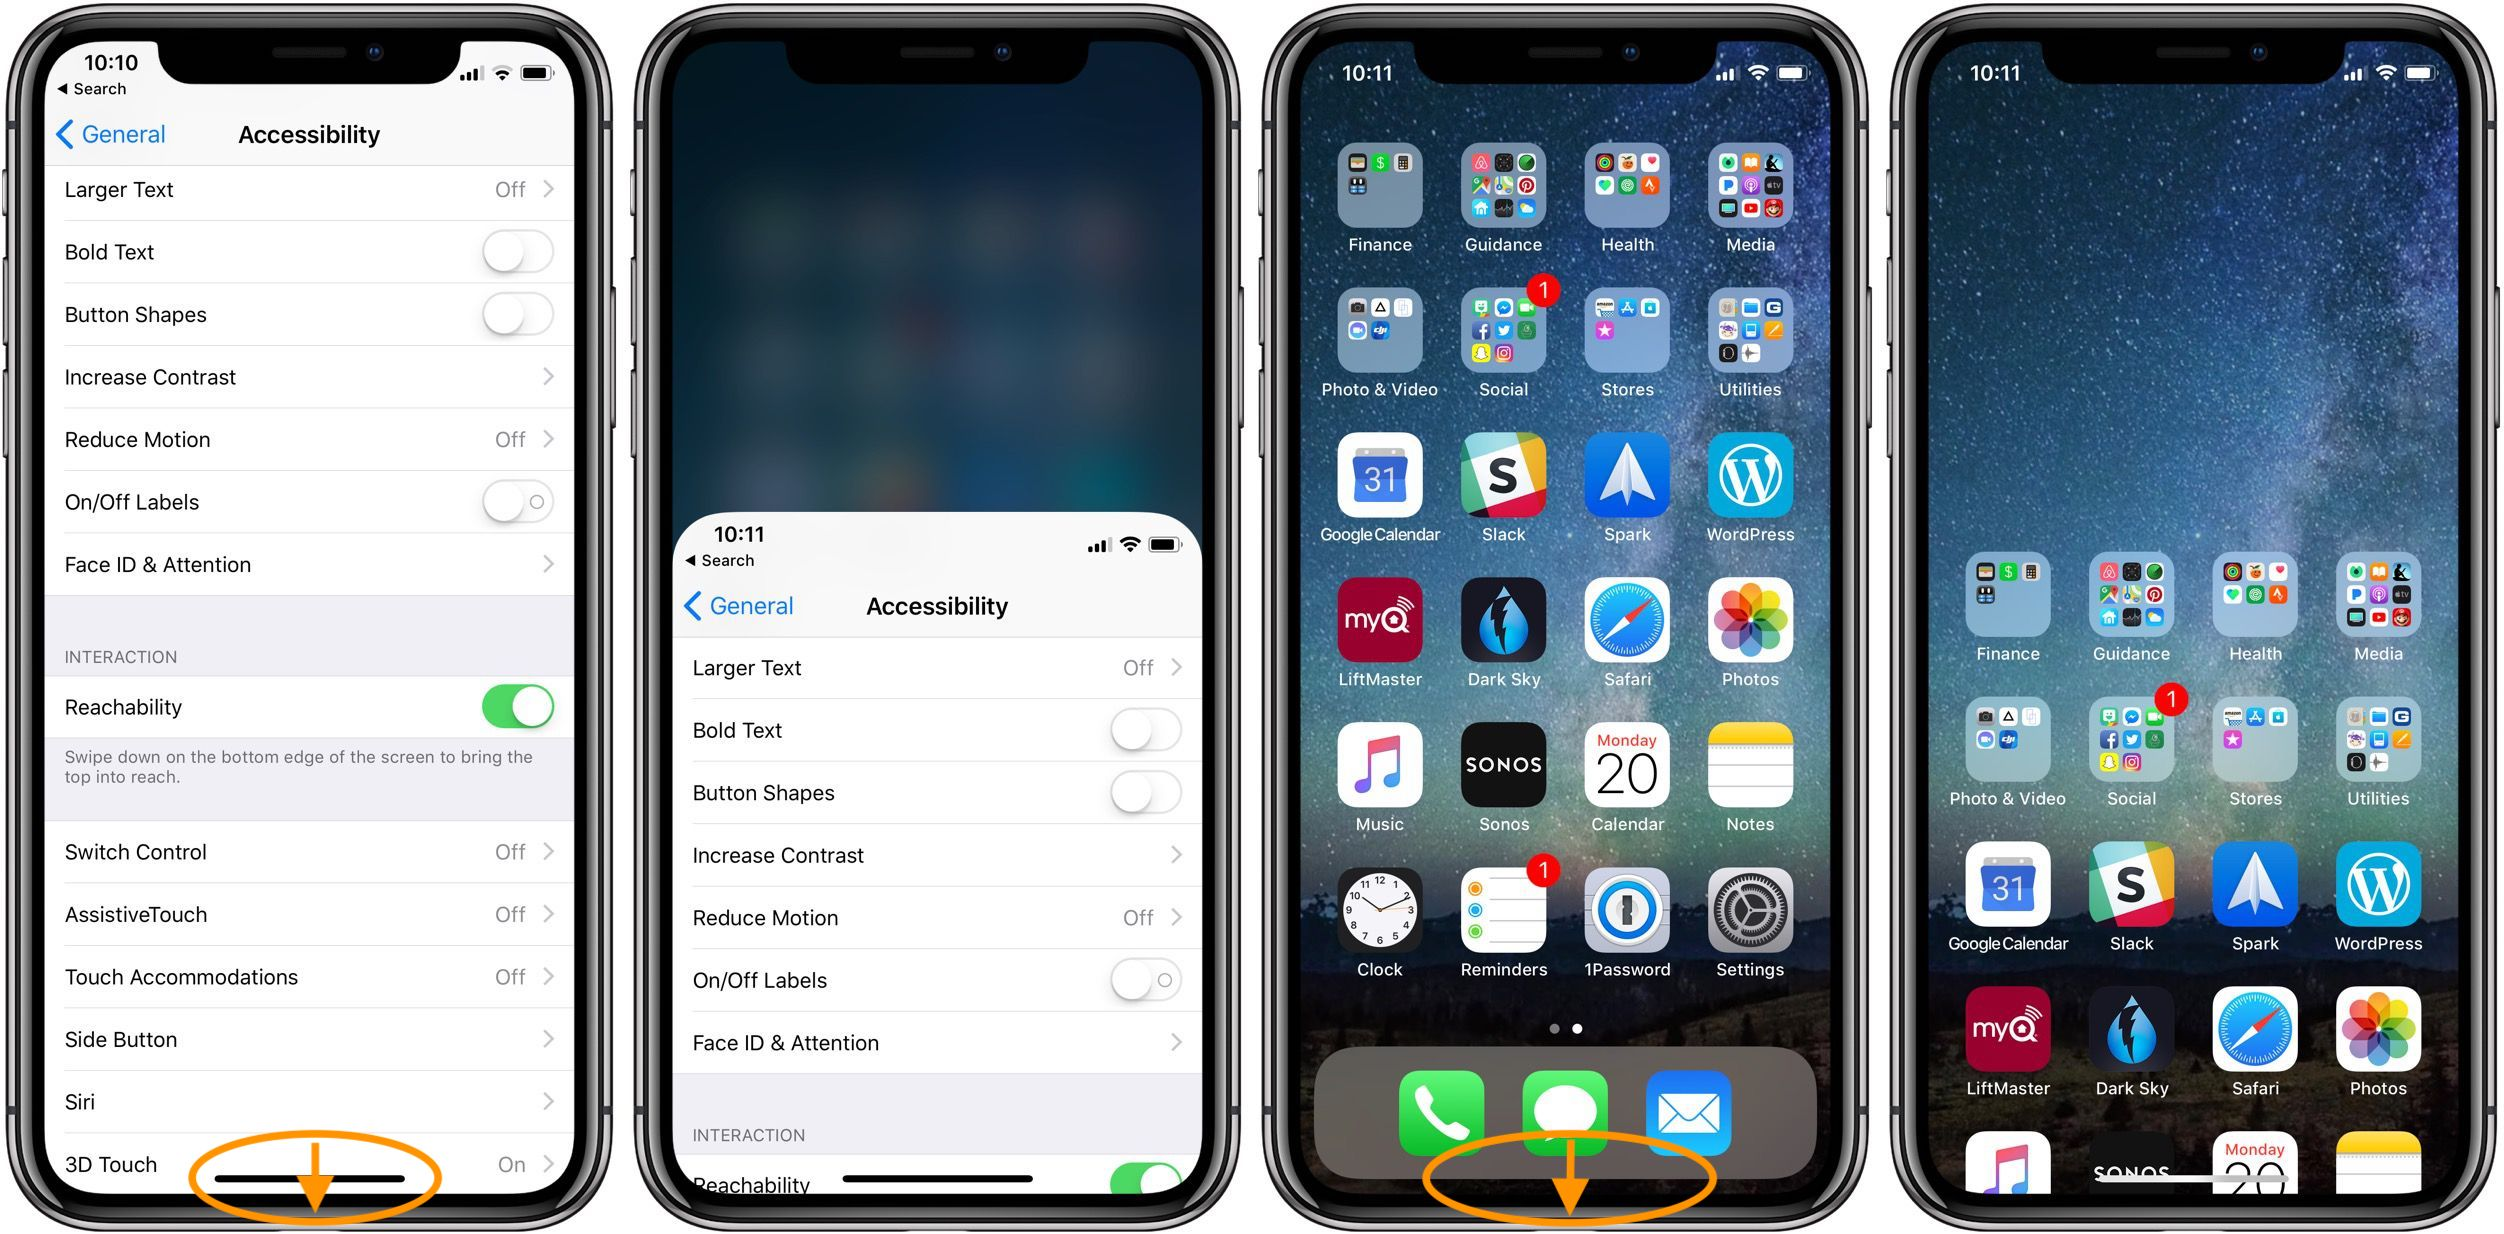 iphone x 3d touch settings